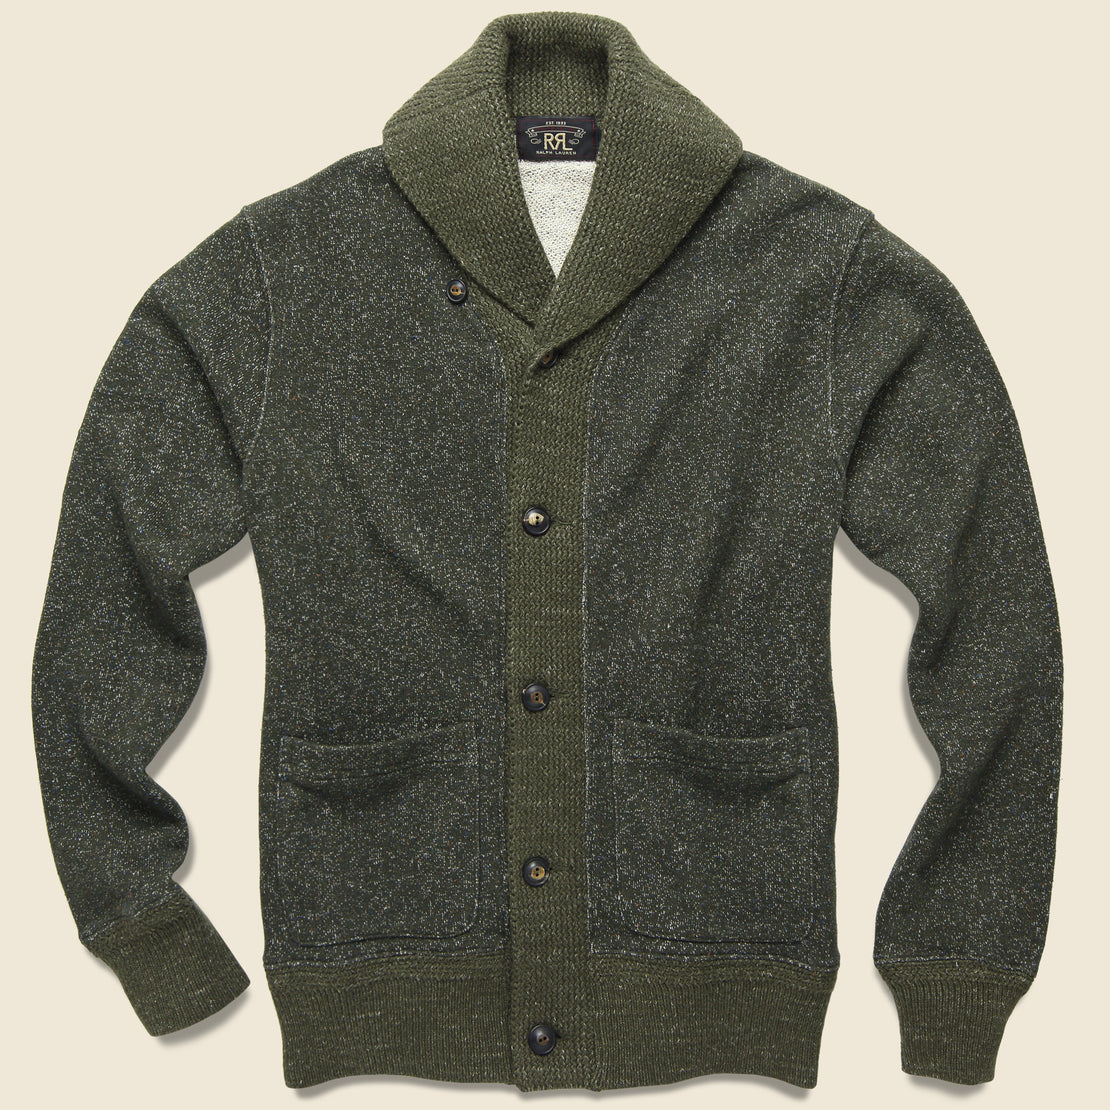 RRL Donegal Shawl Collar Sweater - Olive